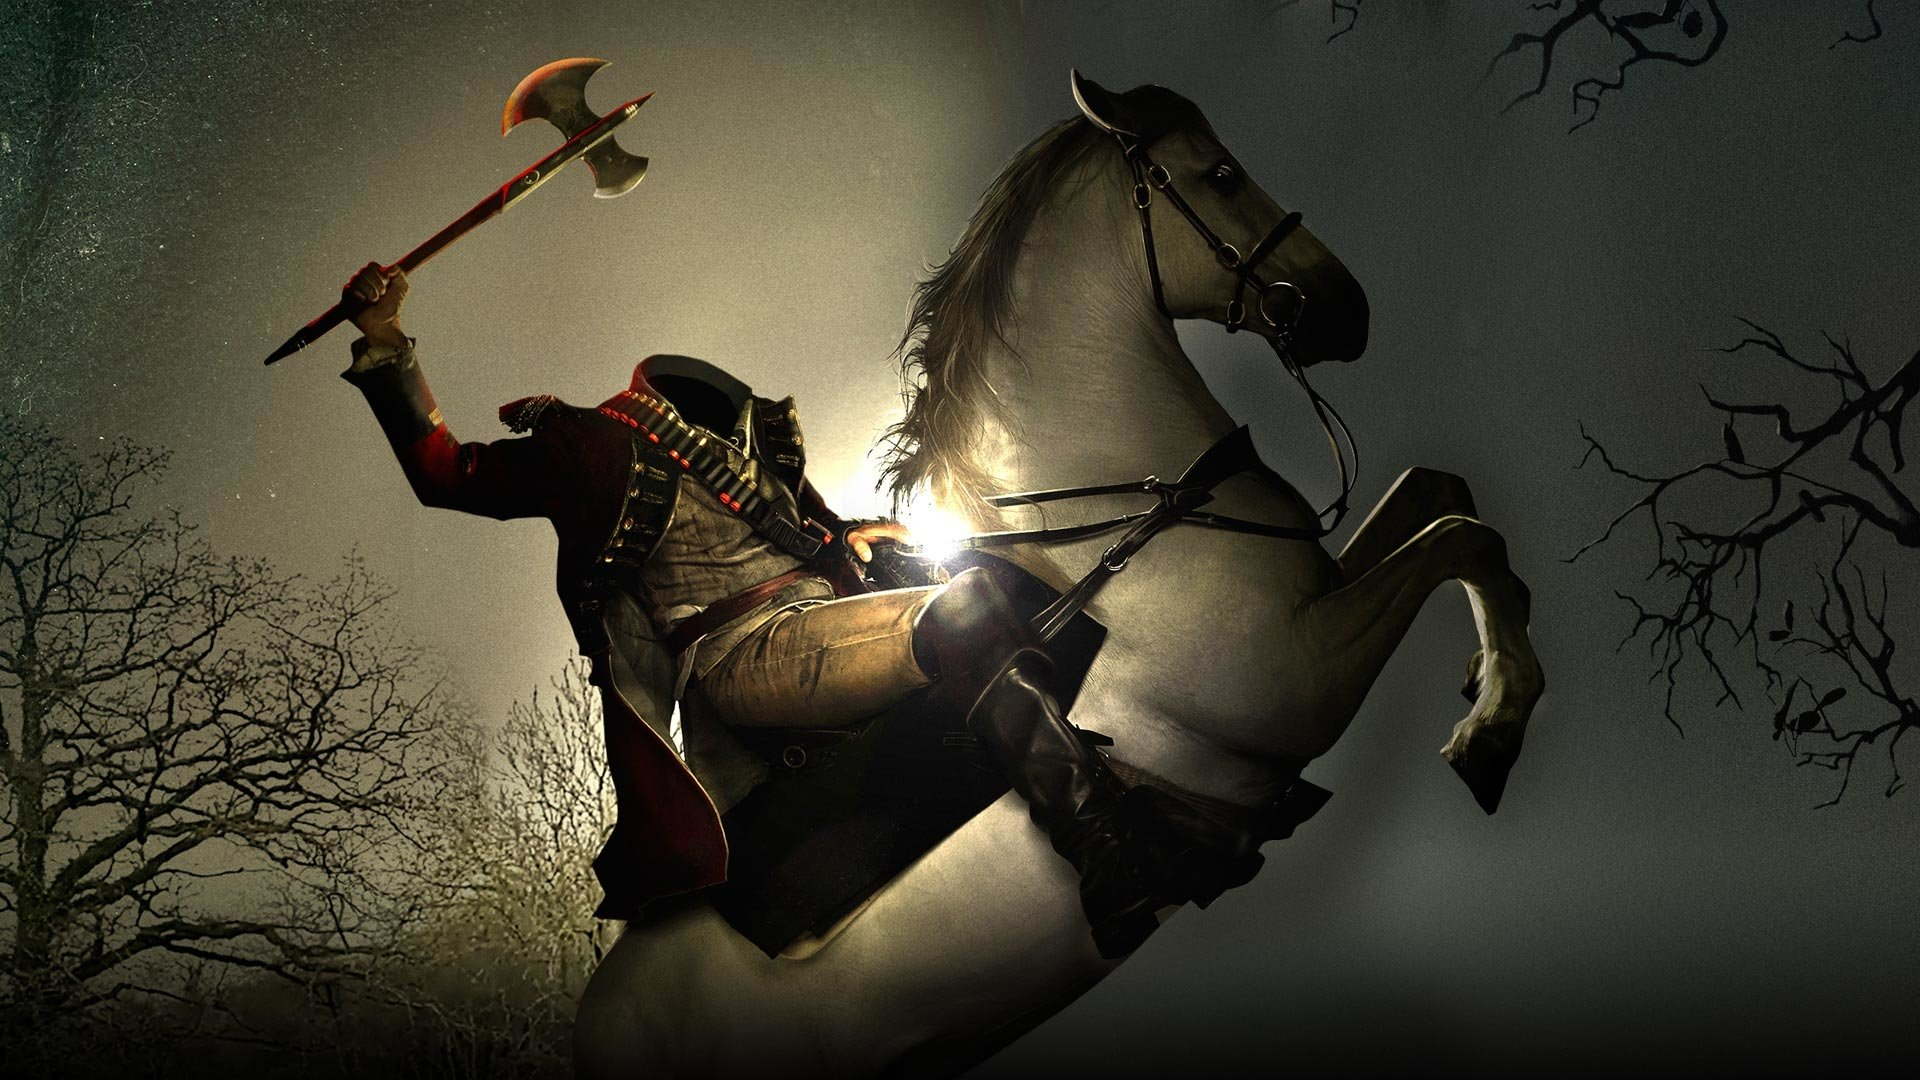 sleepy hollow, headless horseman full hd wallpaper and background